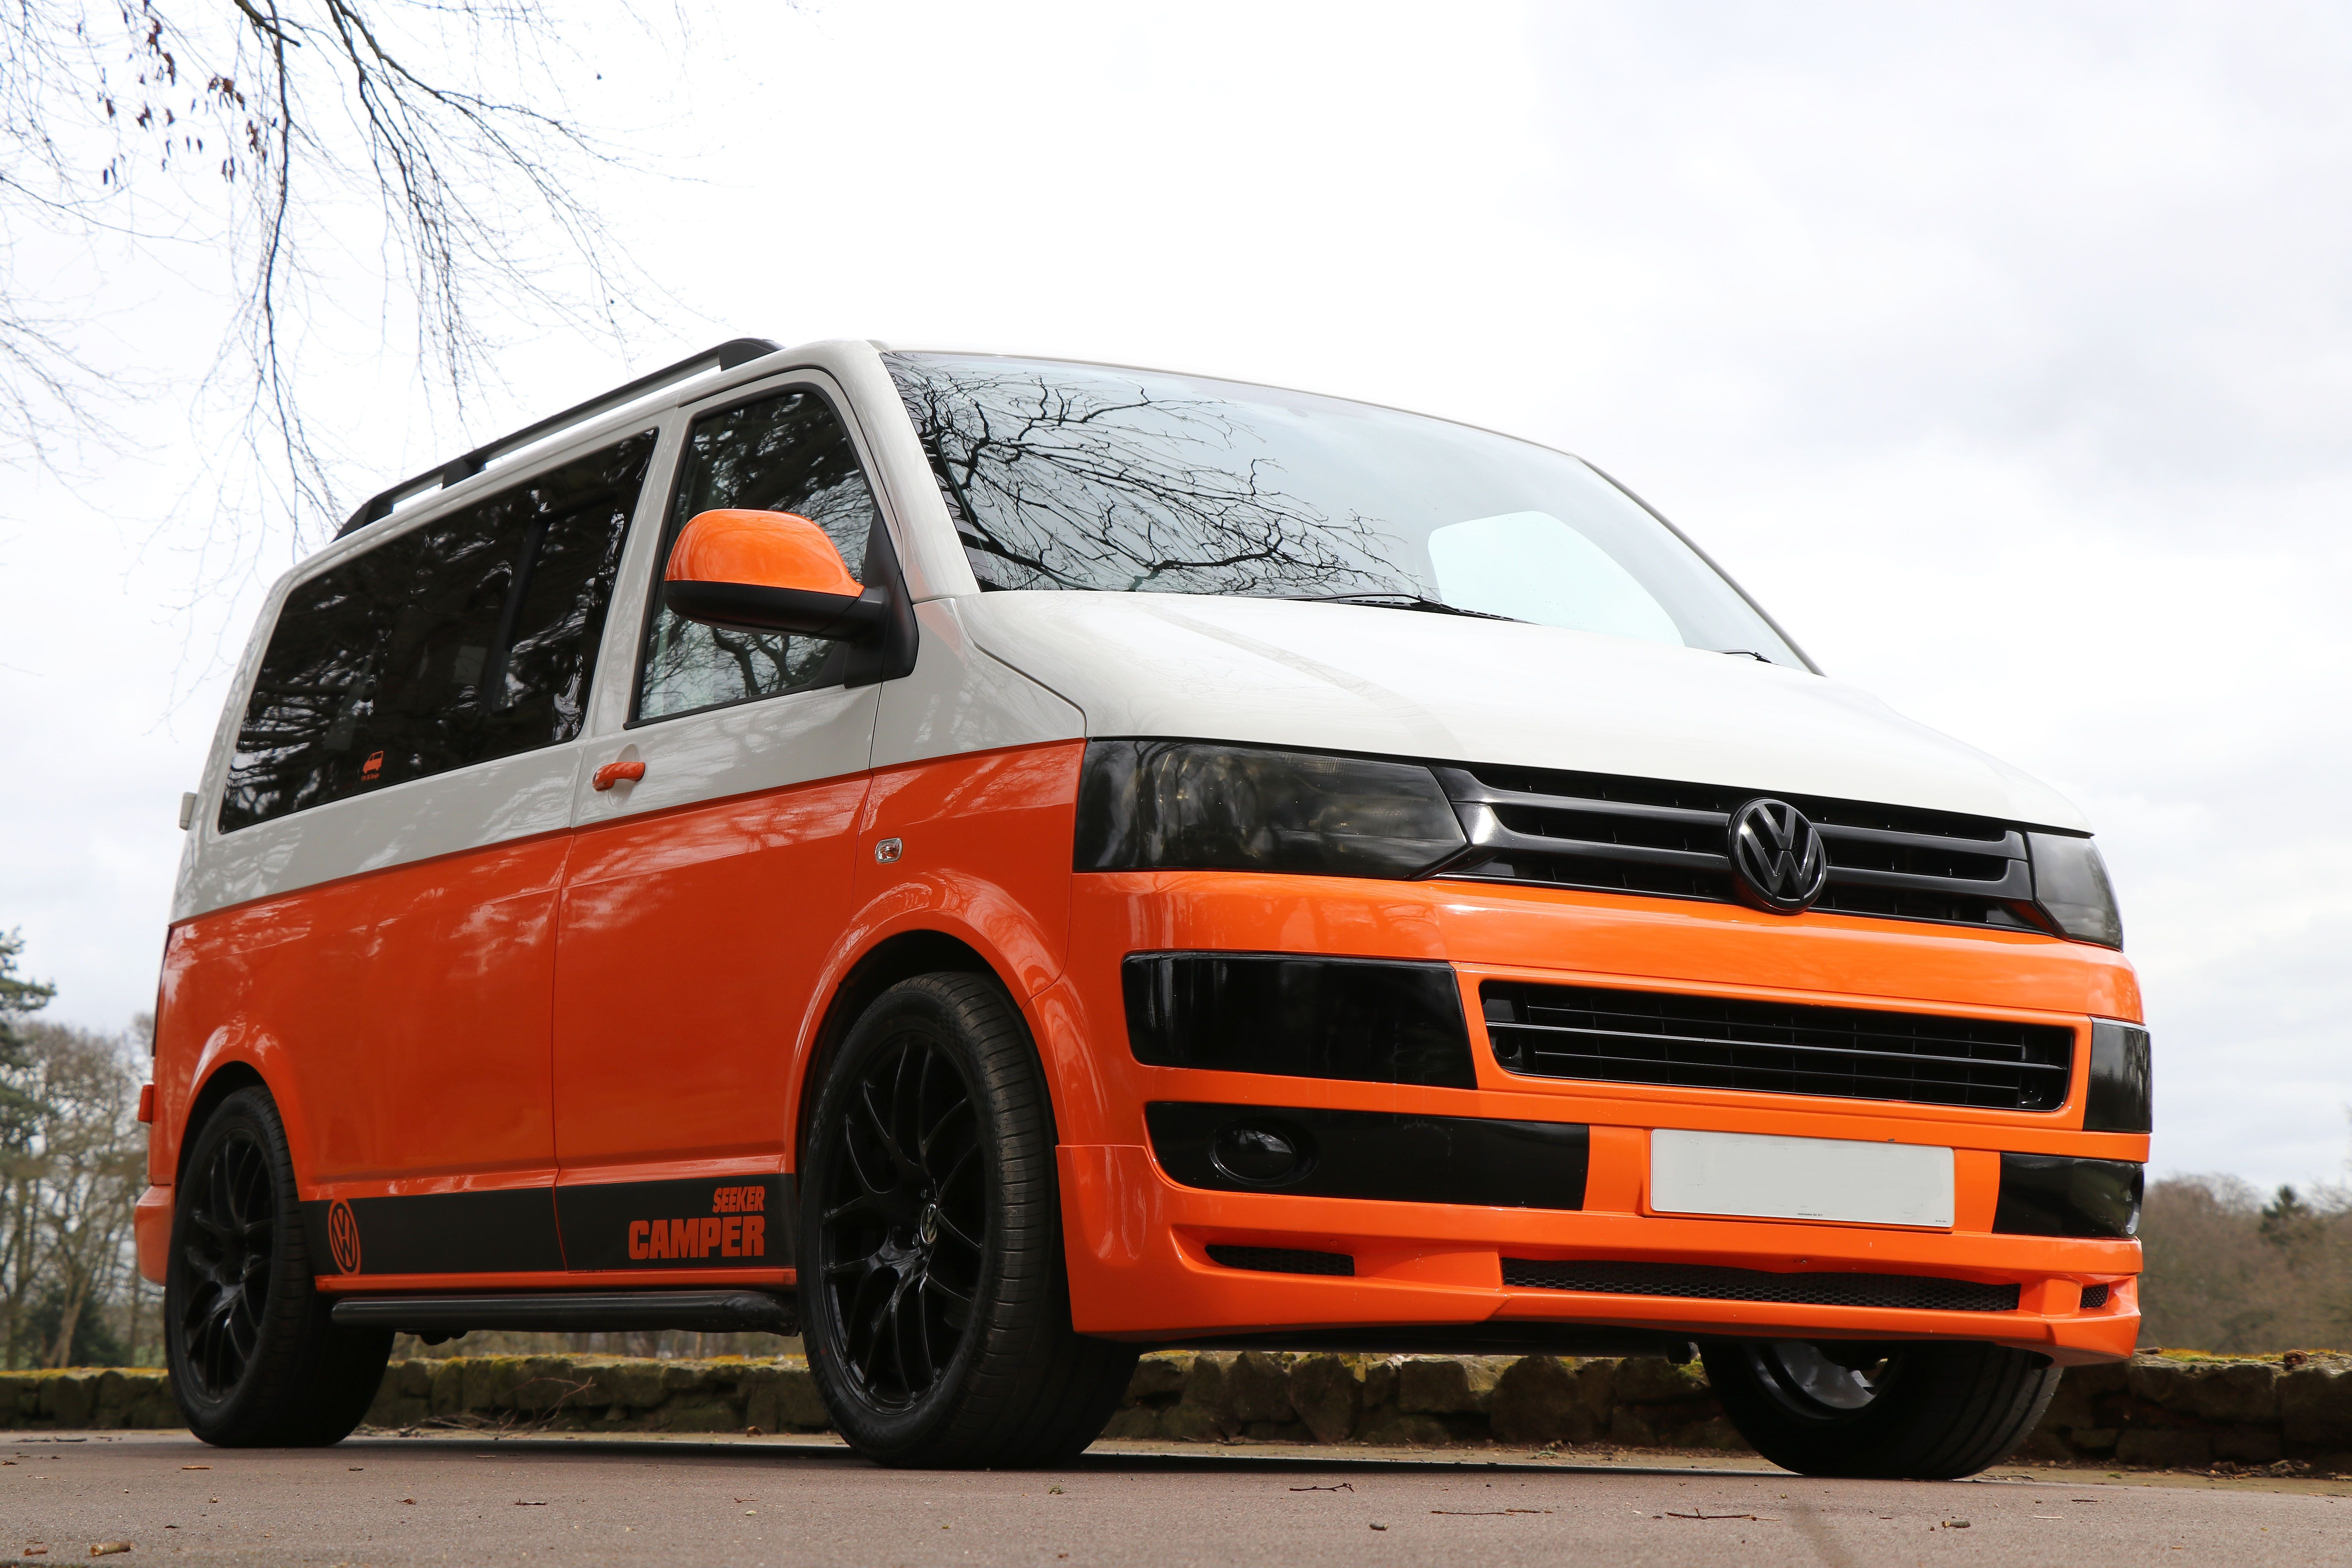 Introducing our SEEKER Camper - a conversion for the VW Transporter T6!